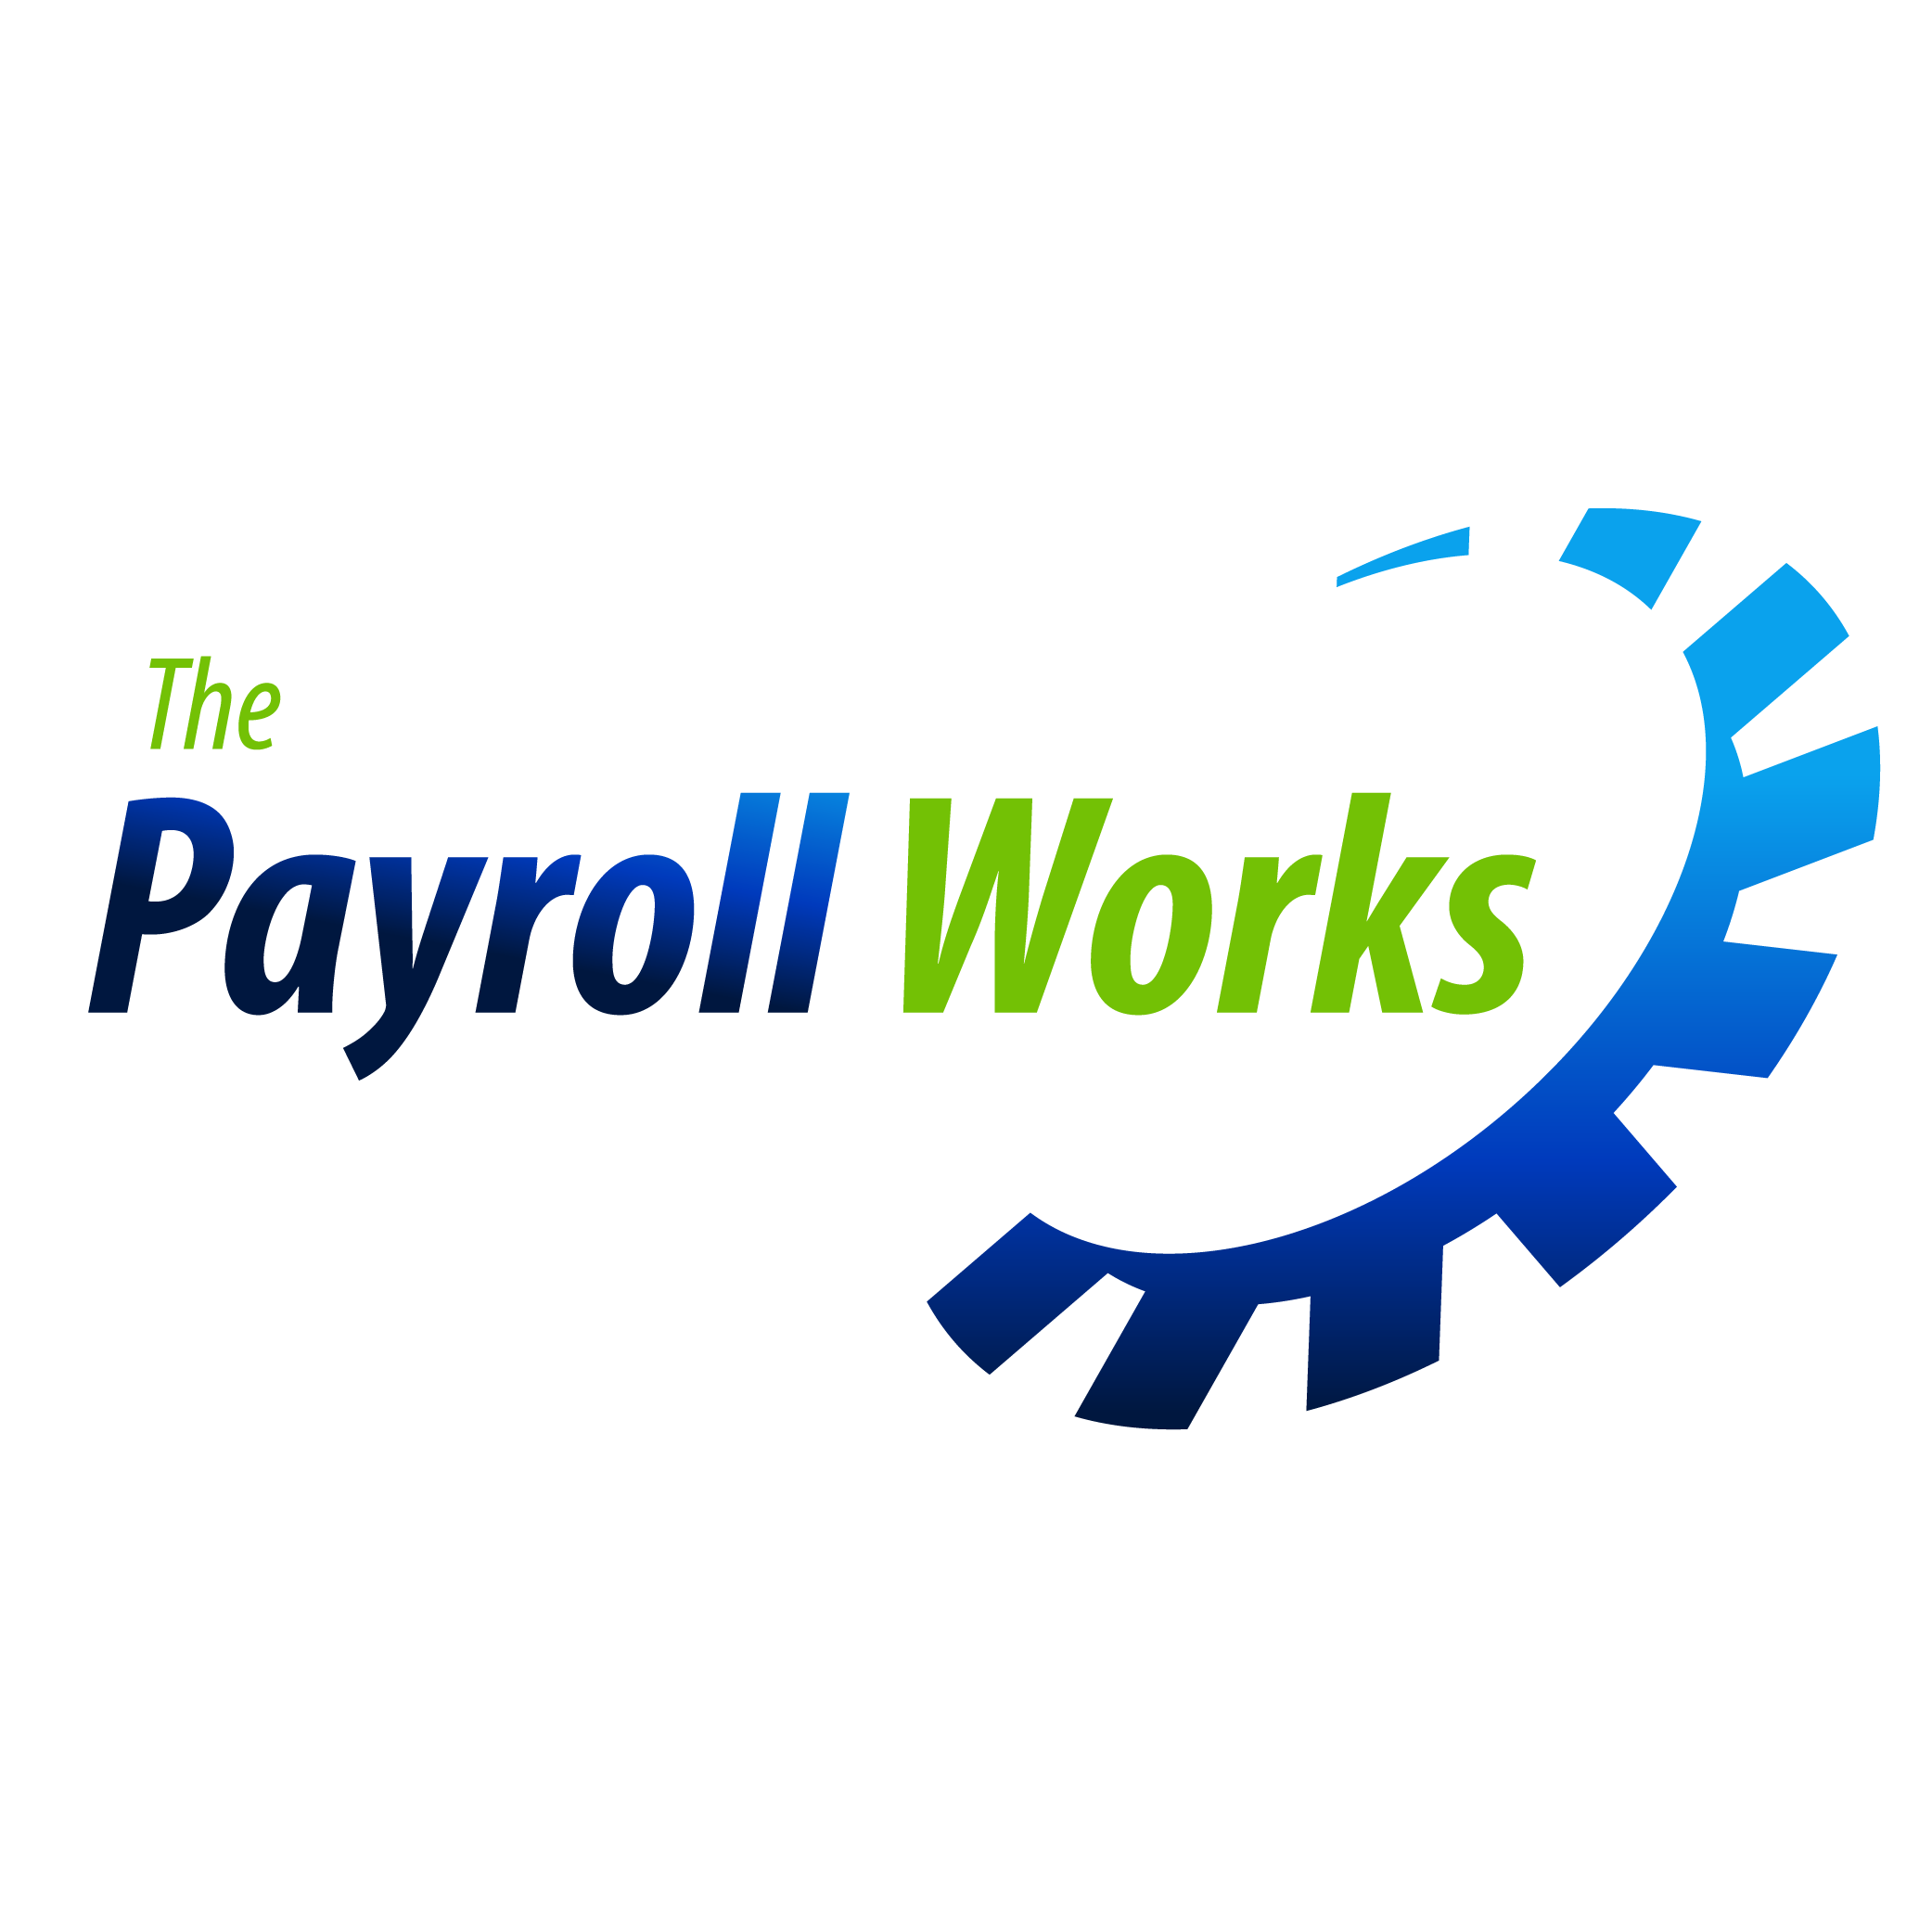 Logo Design by Private User - Entry No. 15 in the Logo Design Contest Captivating Logo Design for The Payroll Works.